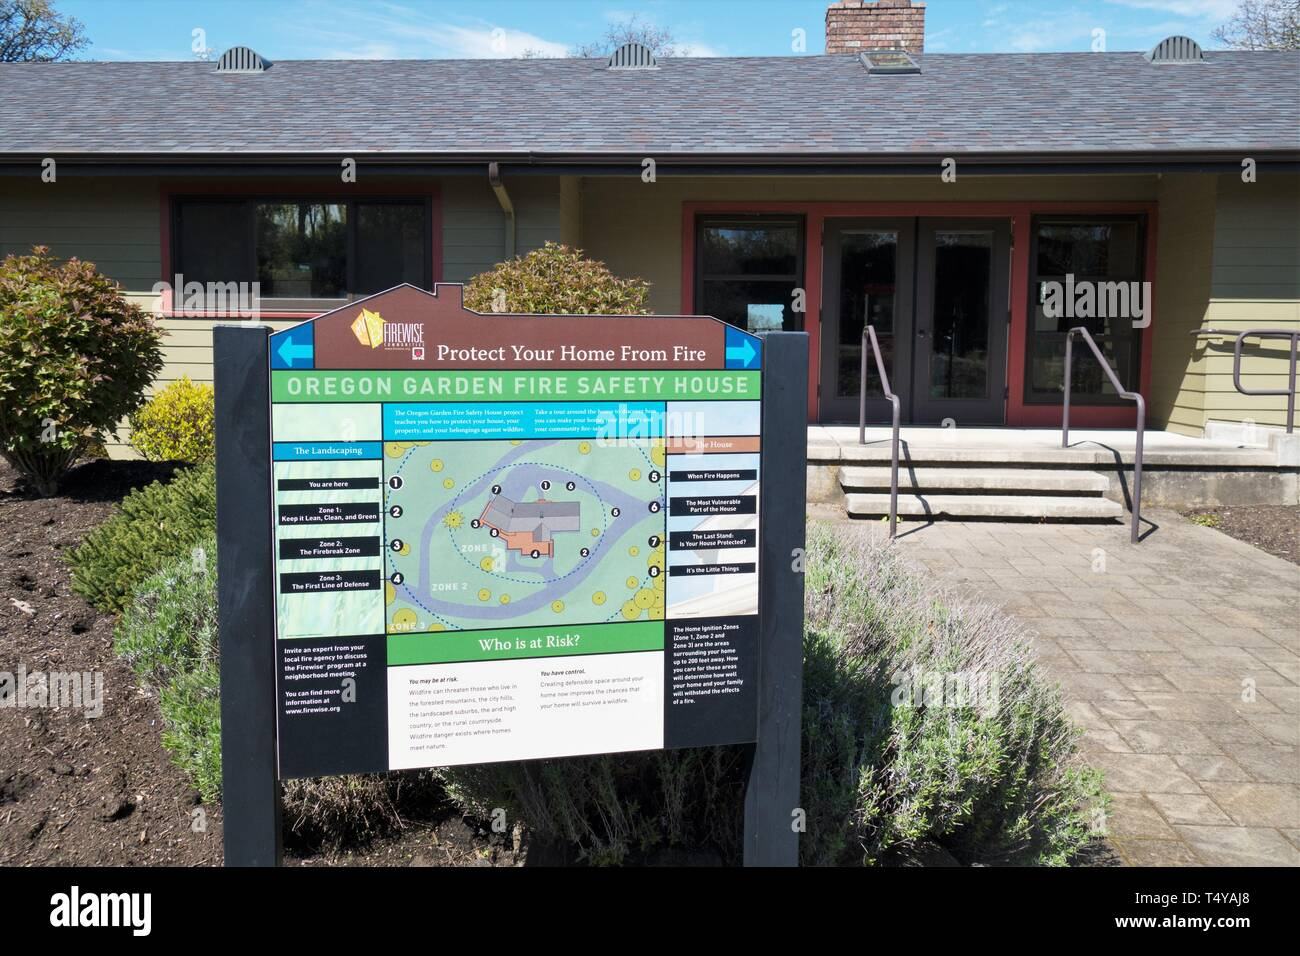 The Fire Safety House, at the Oregon Garden in Silverton, Oregon, USA. - Stock Image